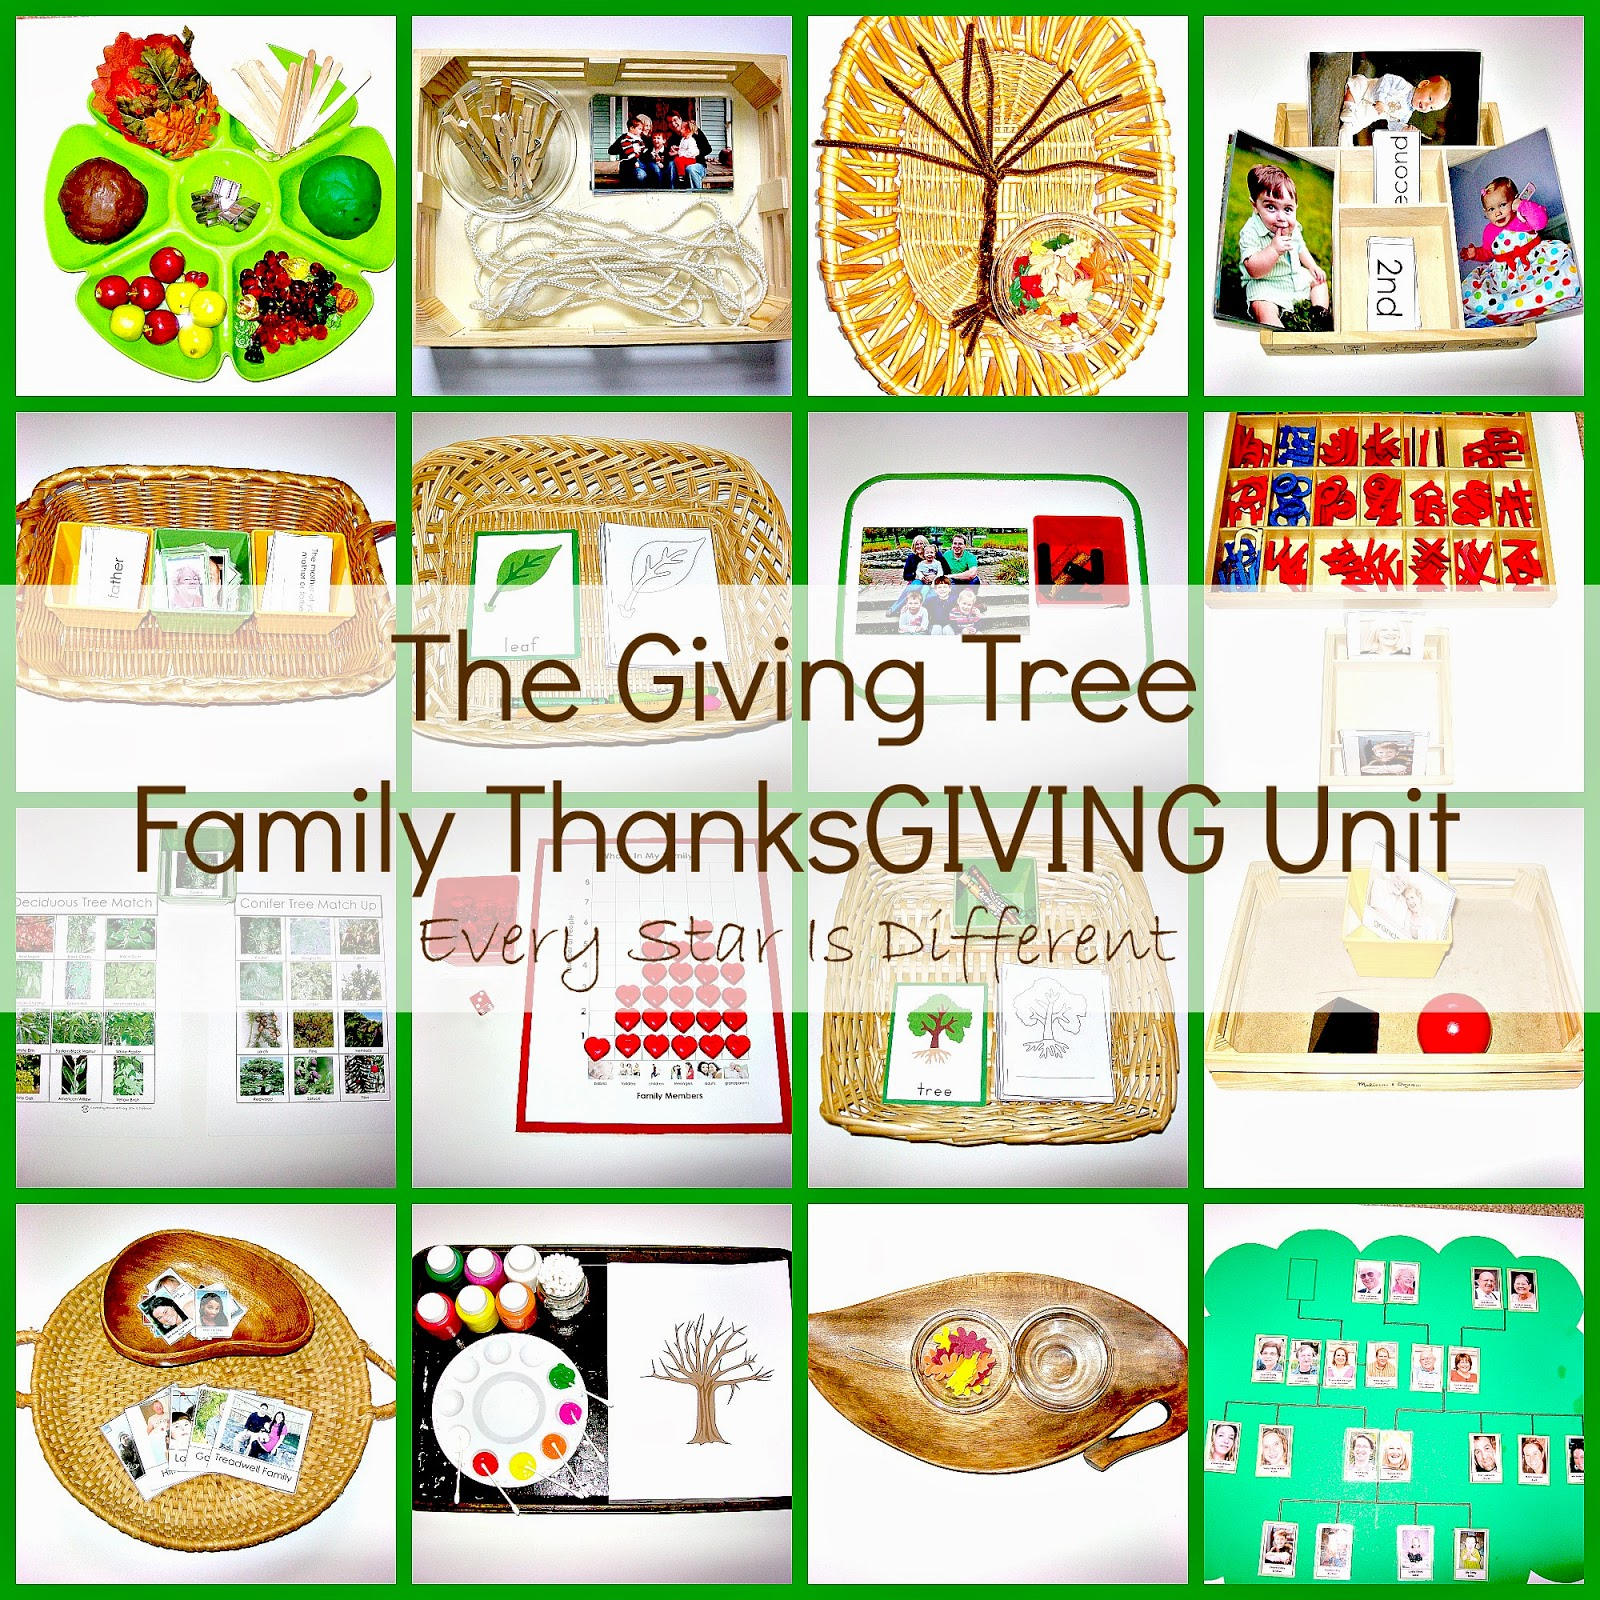 The Giving Tree Family Thanksgiving Unit